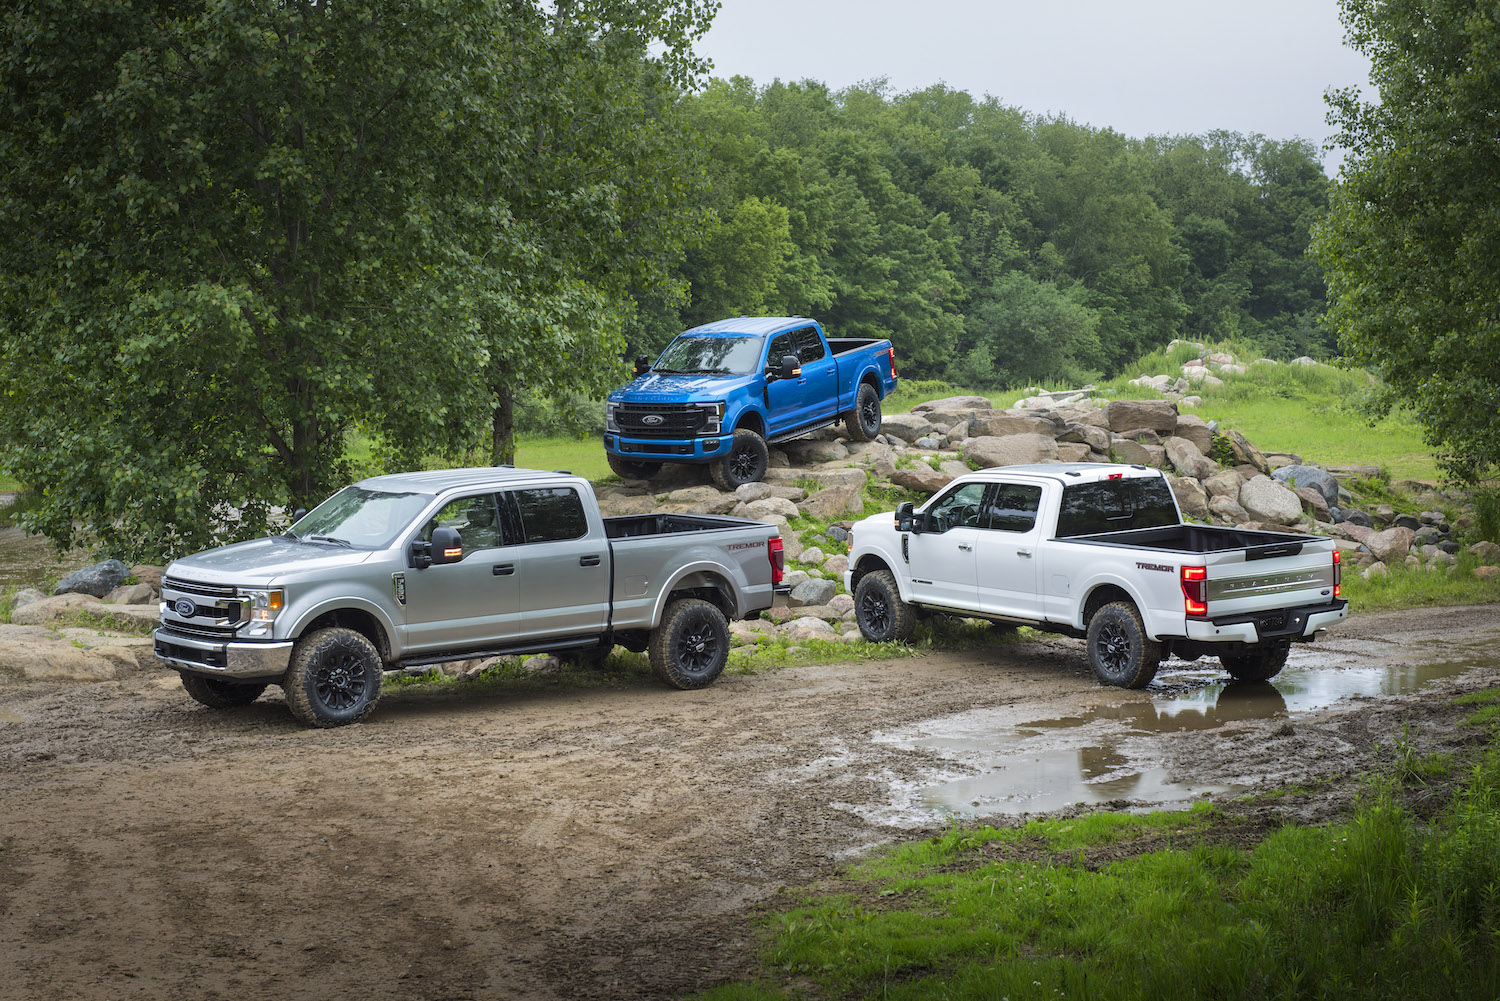 The 2020 Ford F-Series Super Duty can tow 37,000 pounds thumbnail